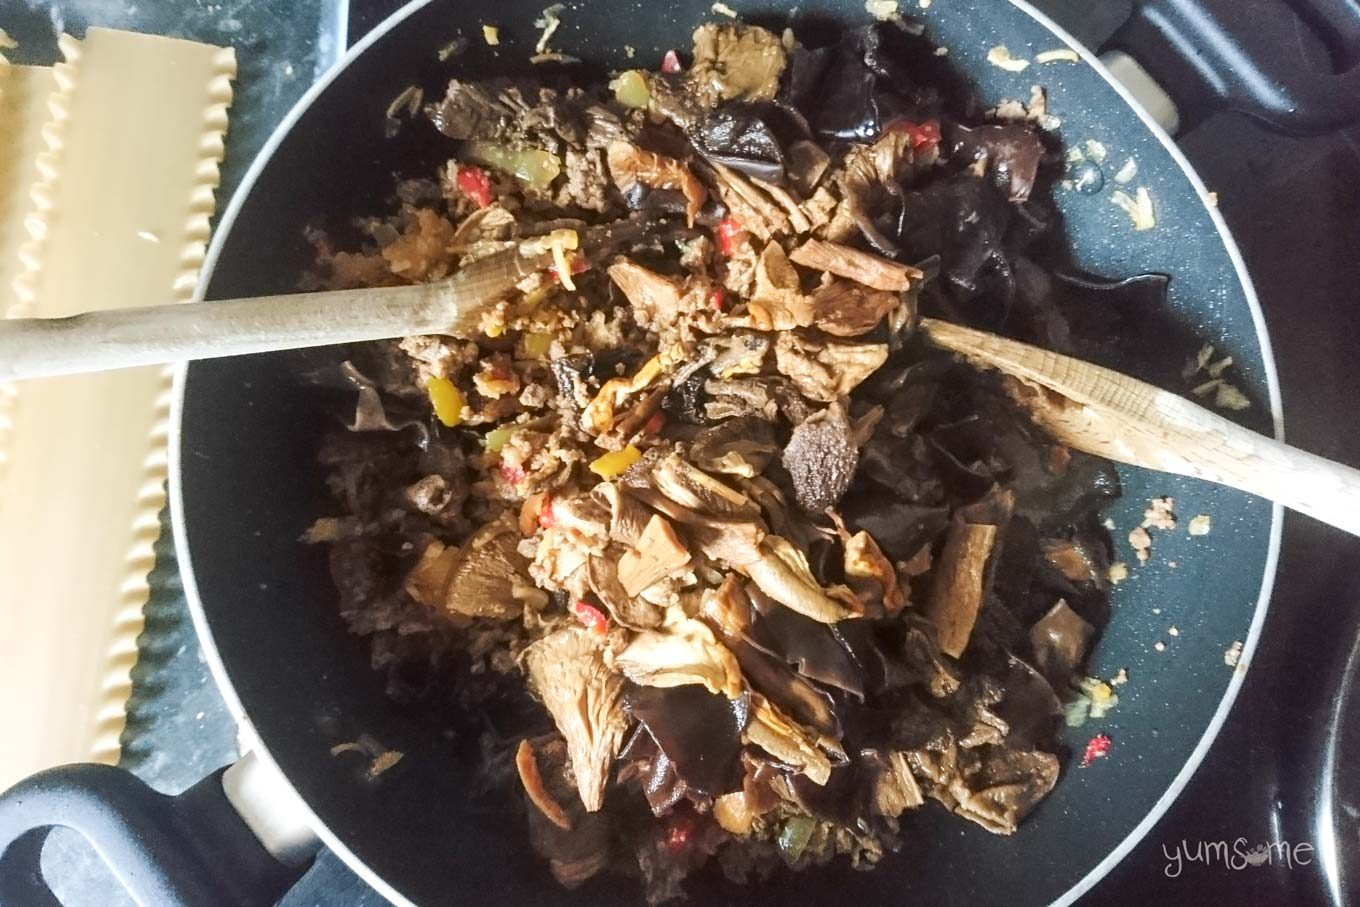 Re-hydrated mushrooms added to soy mince mix.